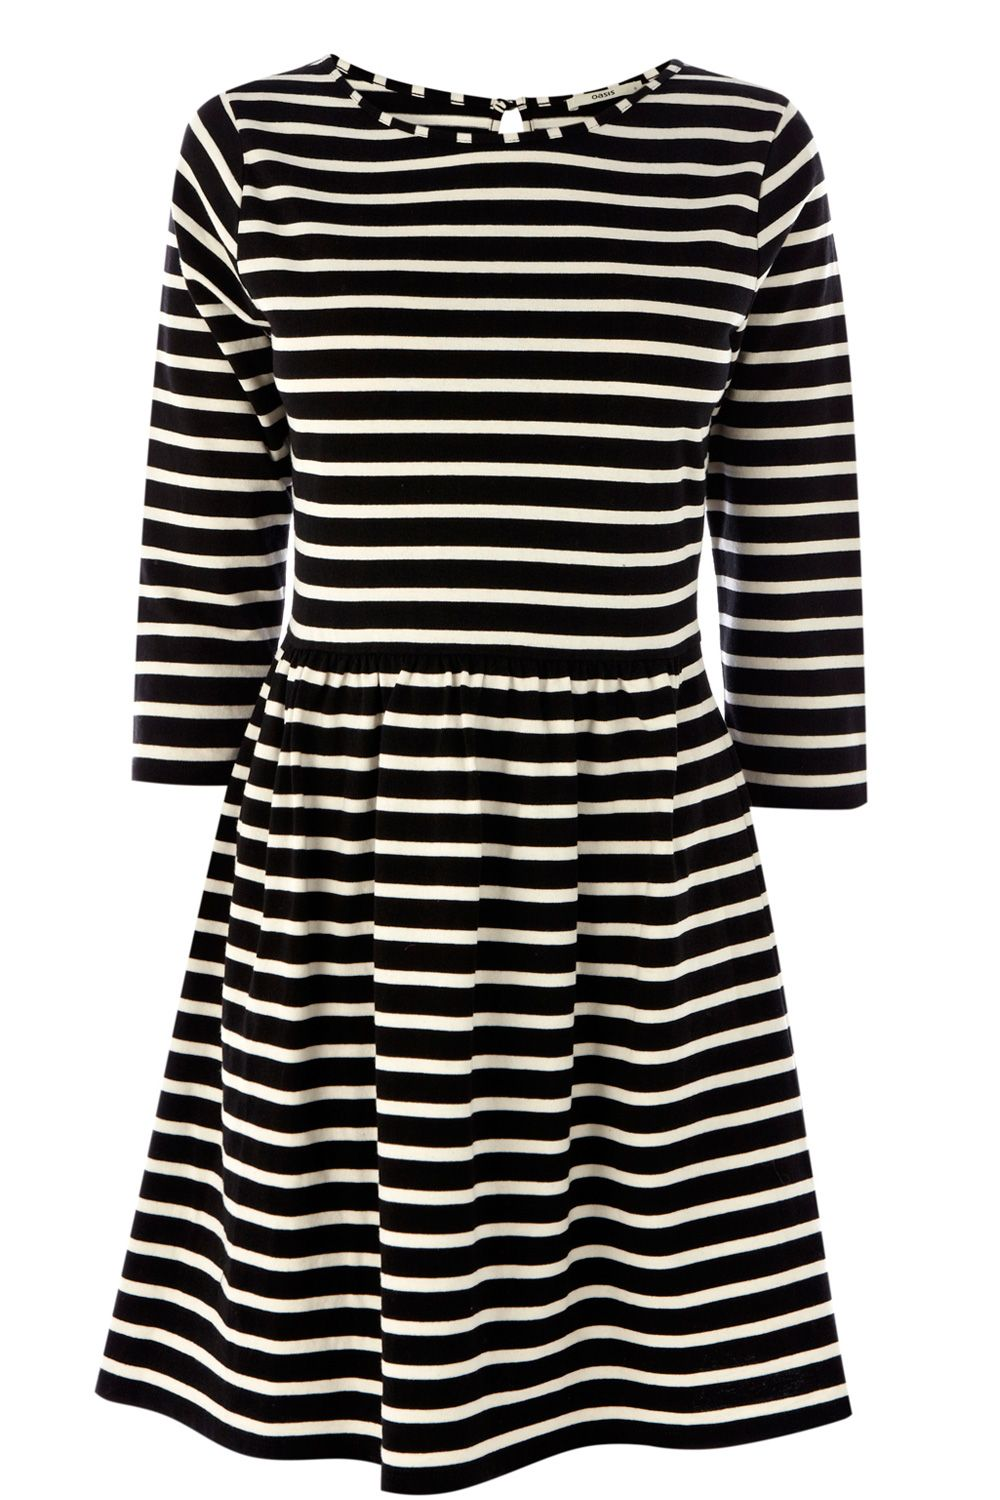 Stripe 3/4 sleeve skater dress